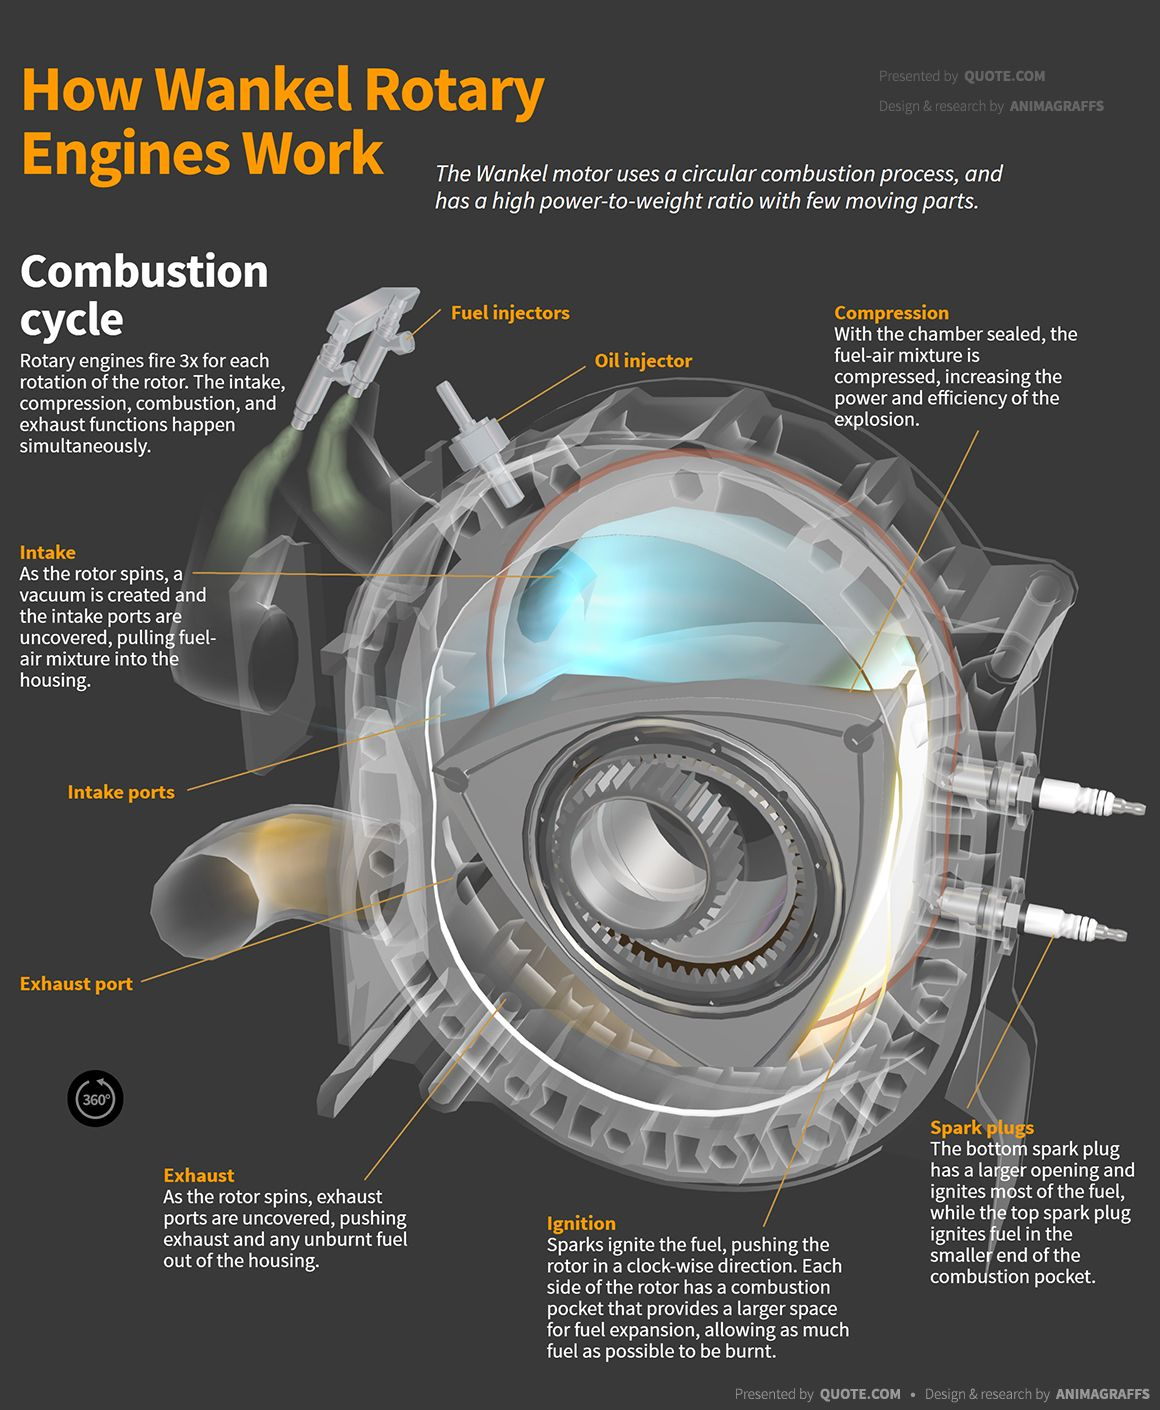 The Wankel motor uses a circular combustion process, and has